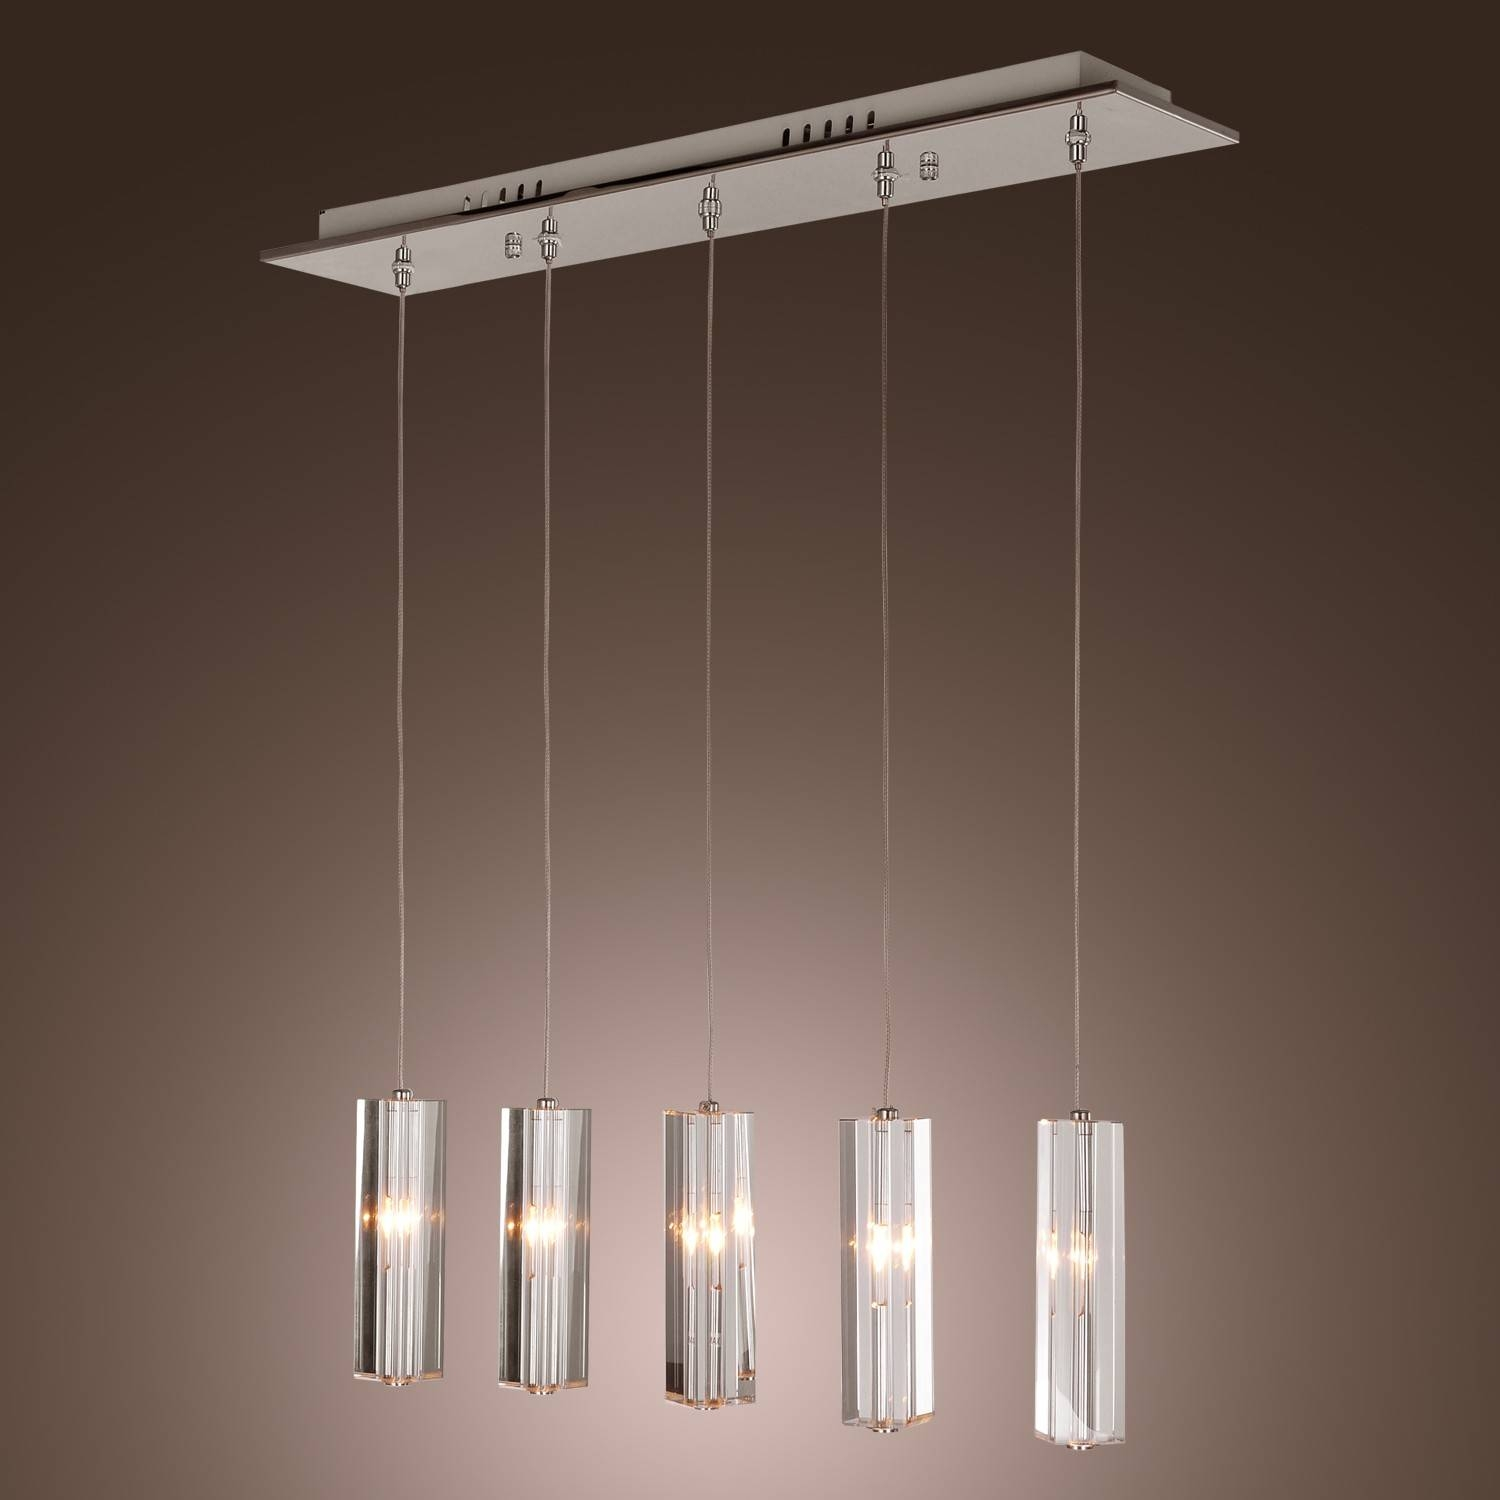 Stainless Steel 5-Light Mini Bar Pendant Light With K9 Crystal regarding Stainless Steel Pendant Lights Fixtures (Image 9 of 15)